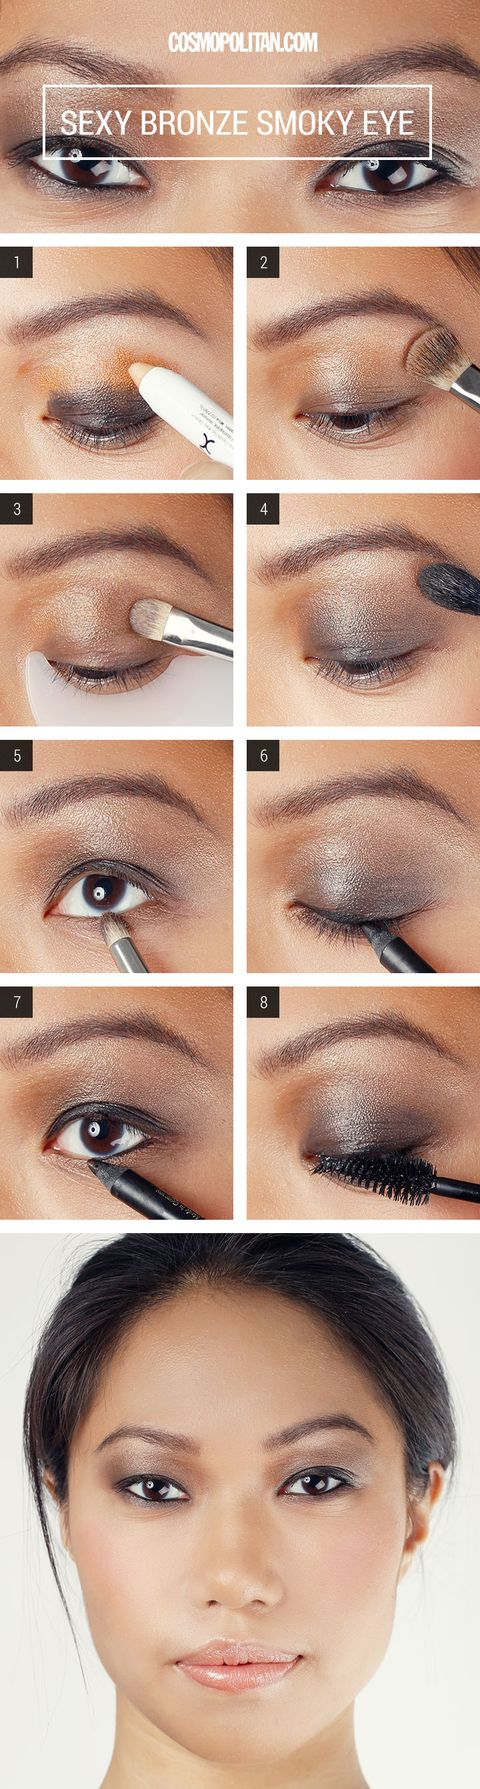 Bronze Smoky Eye Makeup How To Smoky Eye Makeup Tutorial